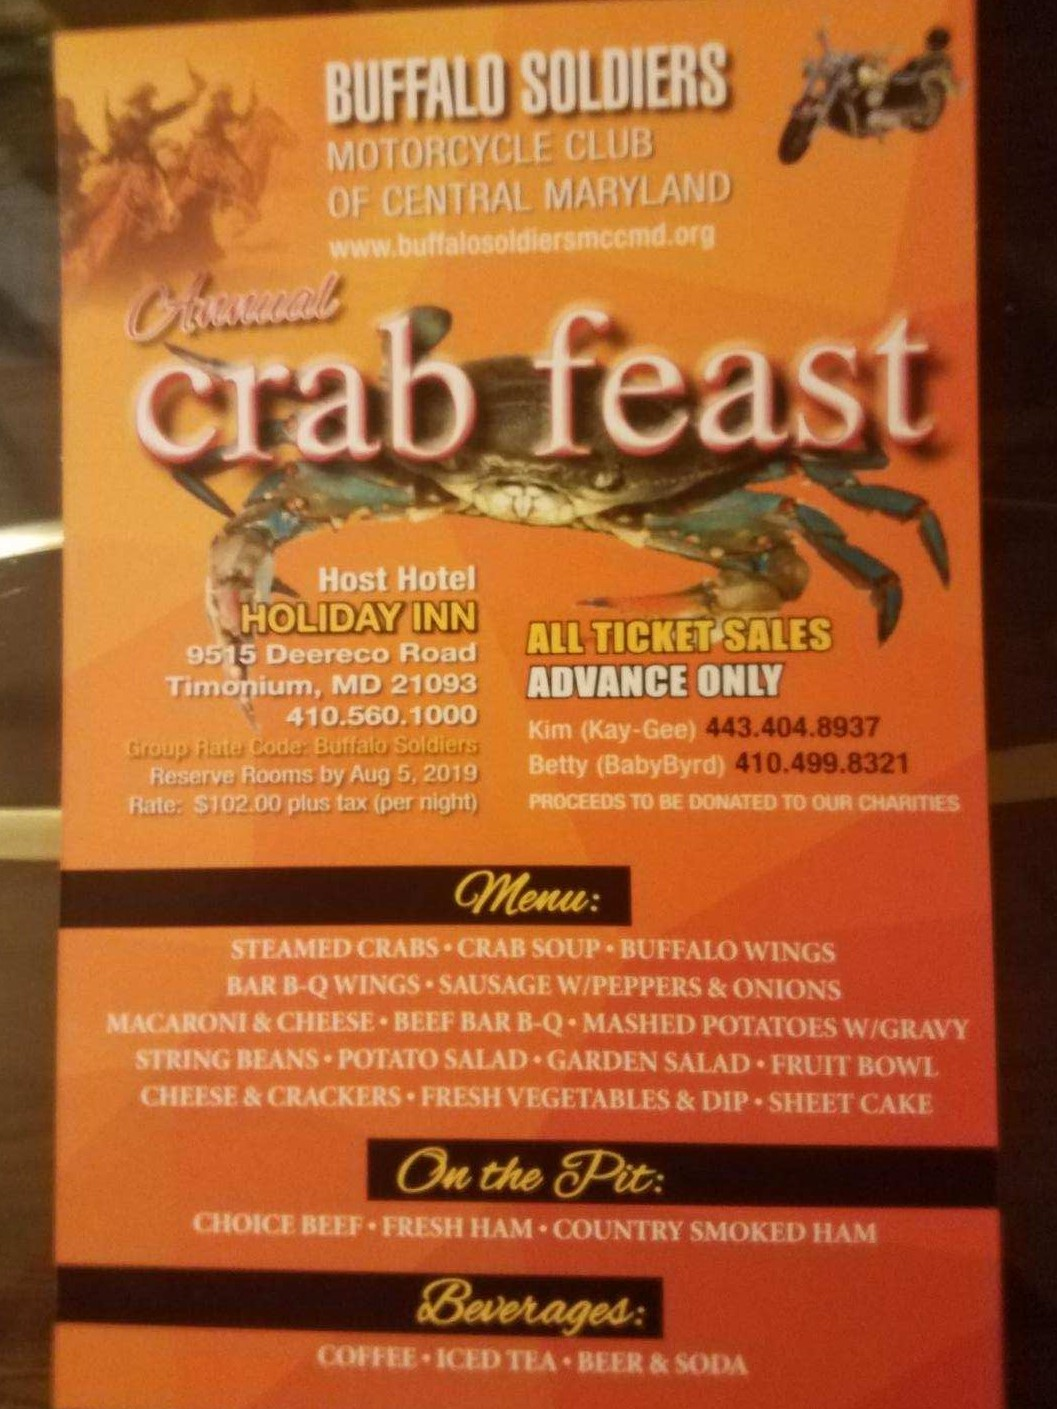 BSMC Central MD Annual Crab Feast 2019 | Buffalo Soldiers ...